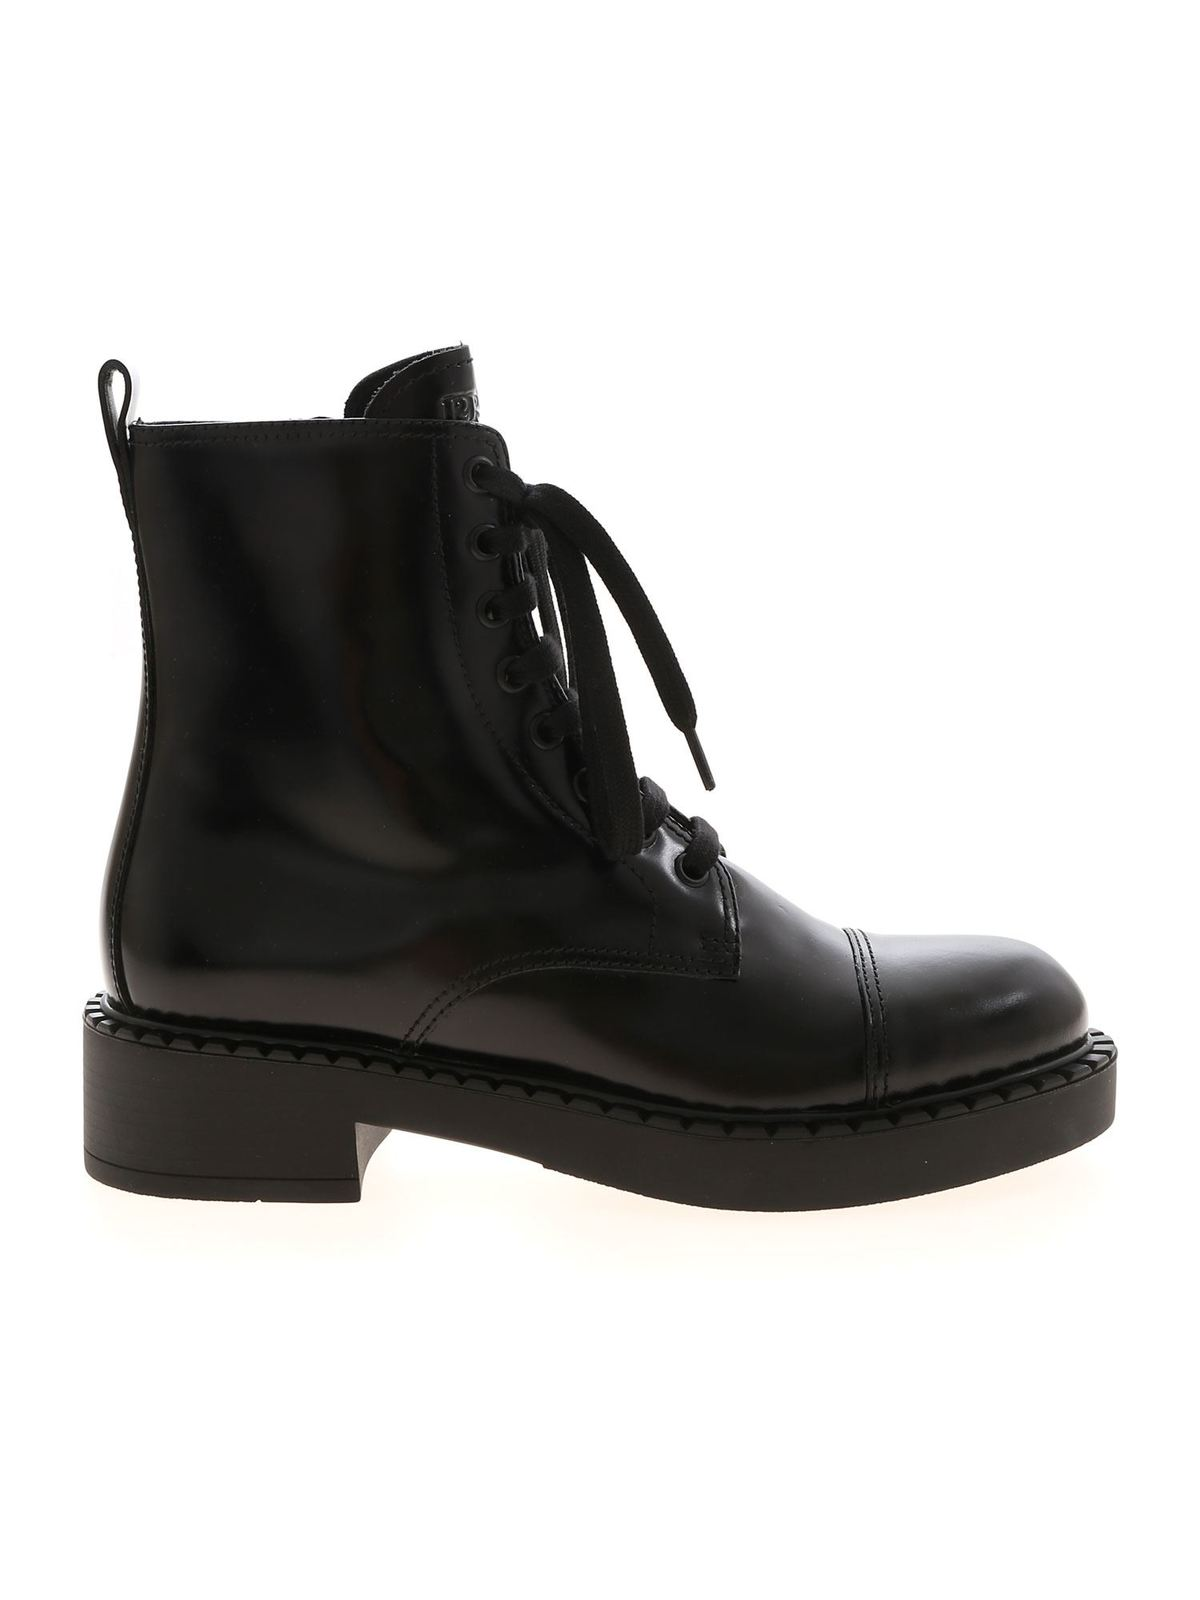 Prada SHINY ANKLE BOOTS IN BLACK